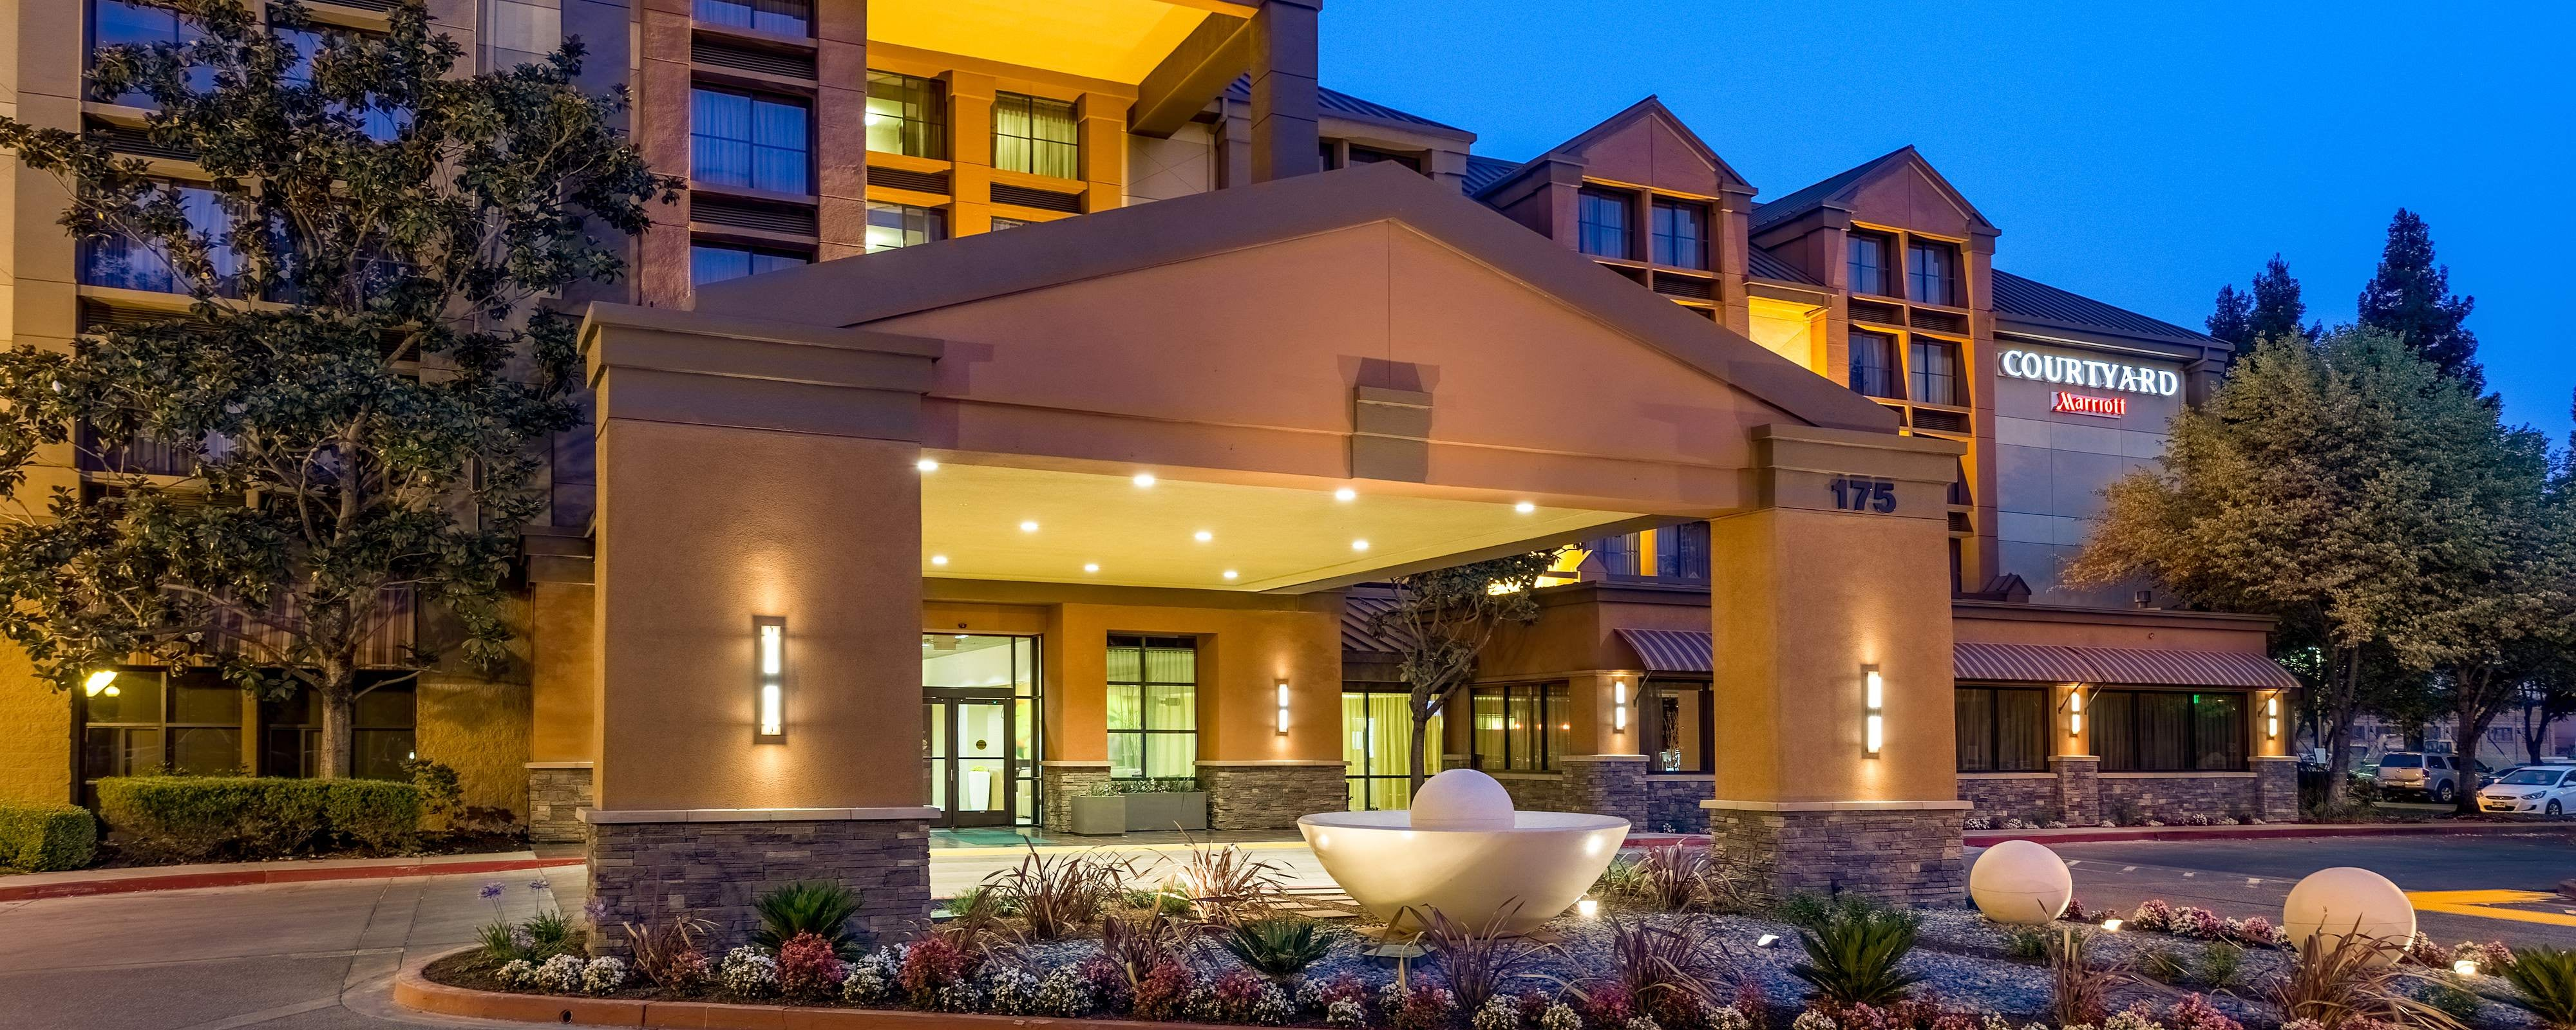 Fachada del Courtyard by Marriott Santa Rosa